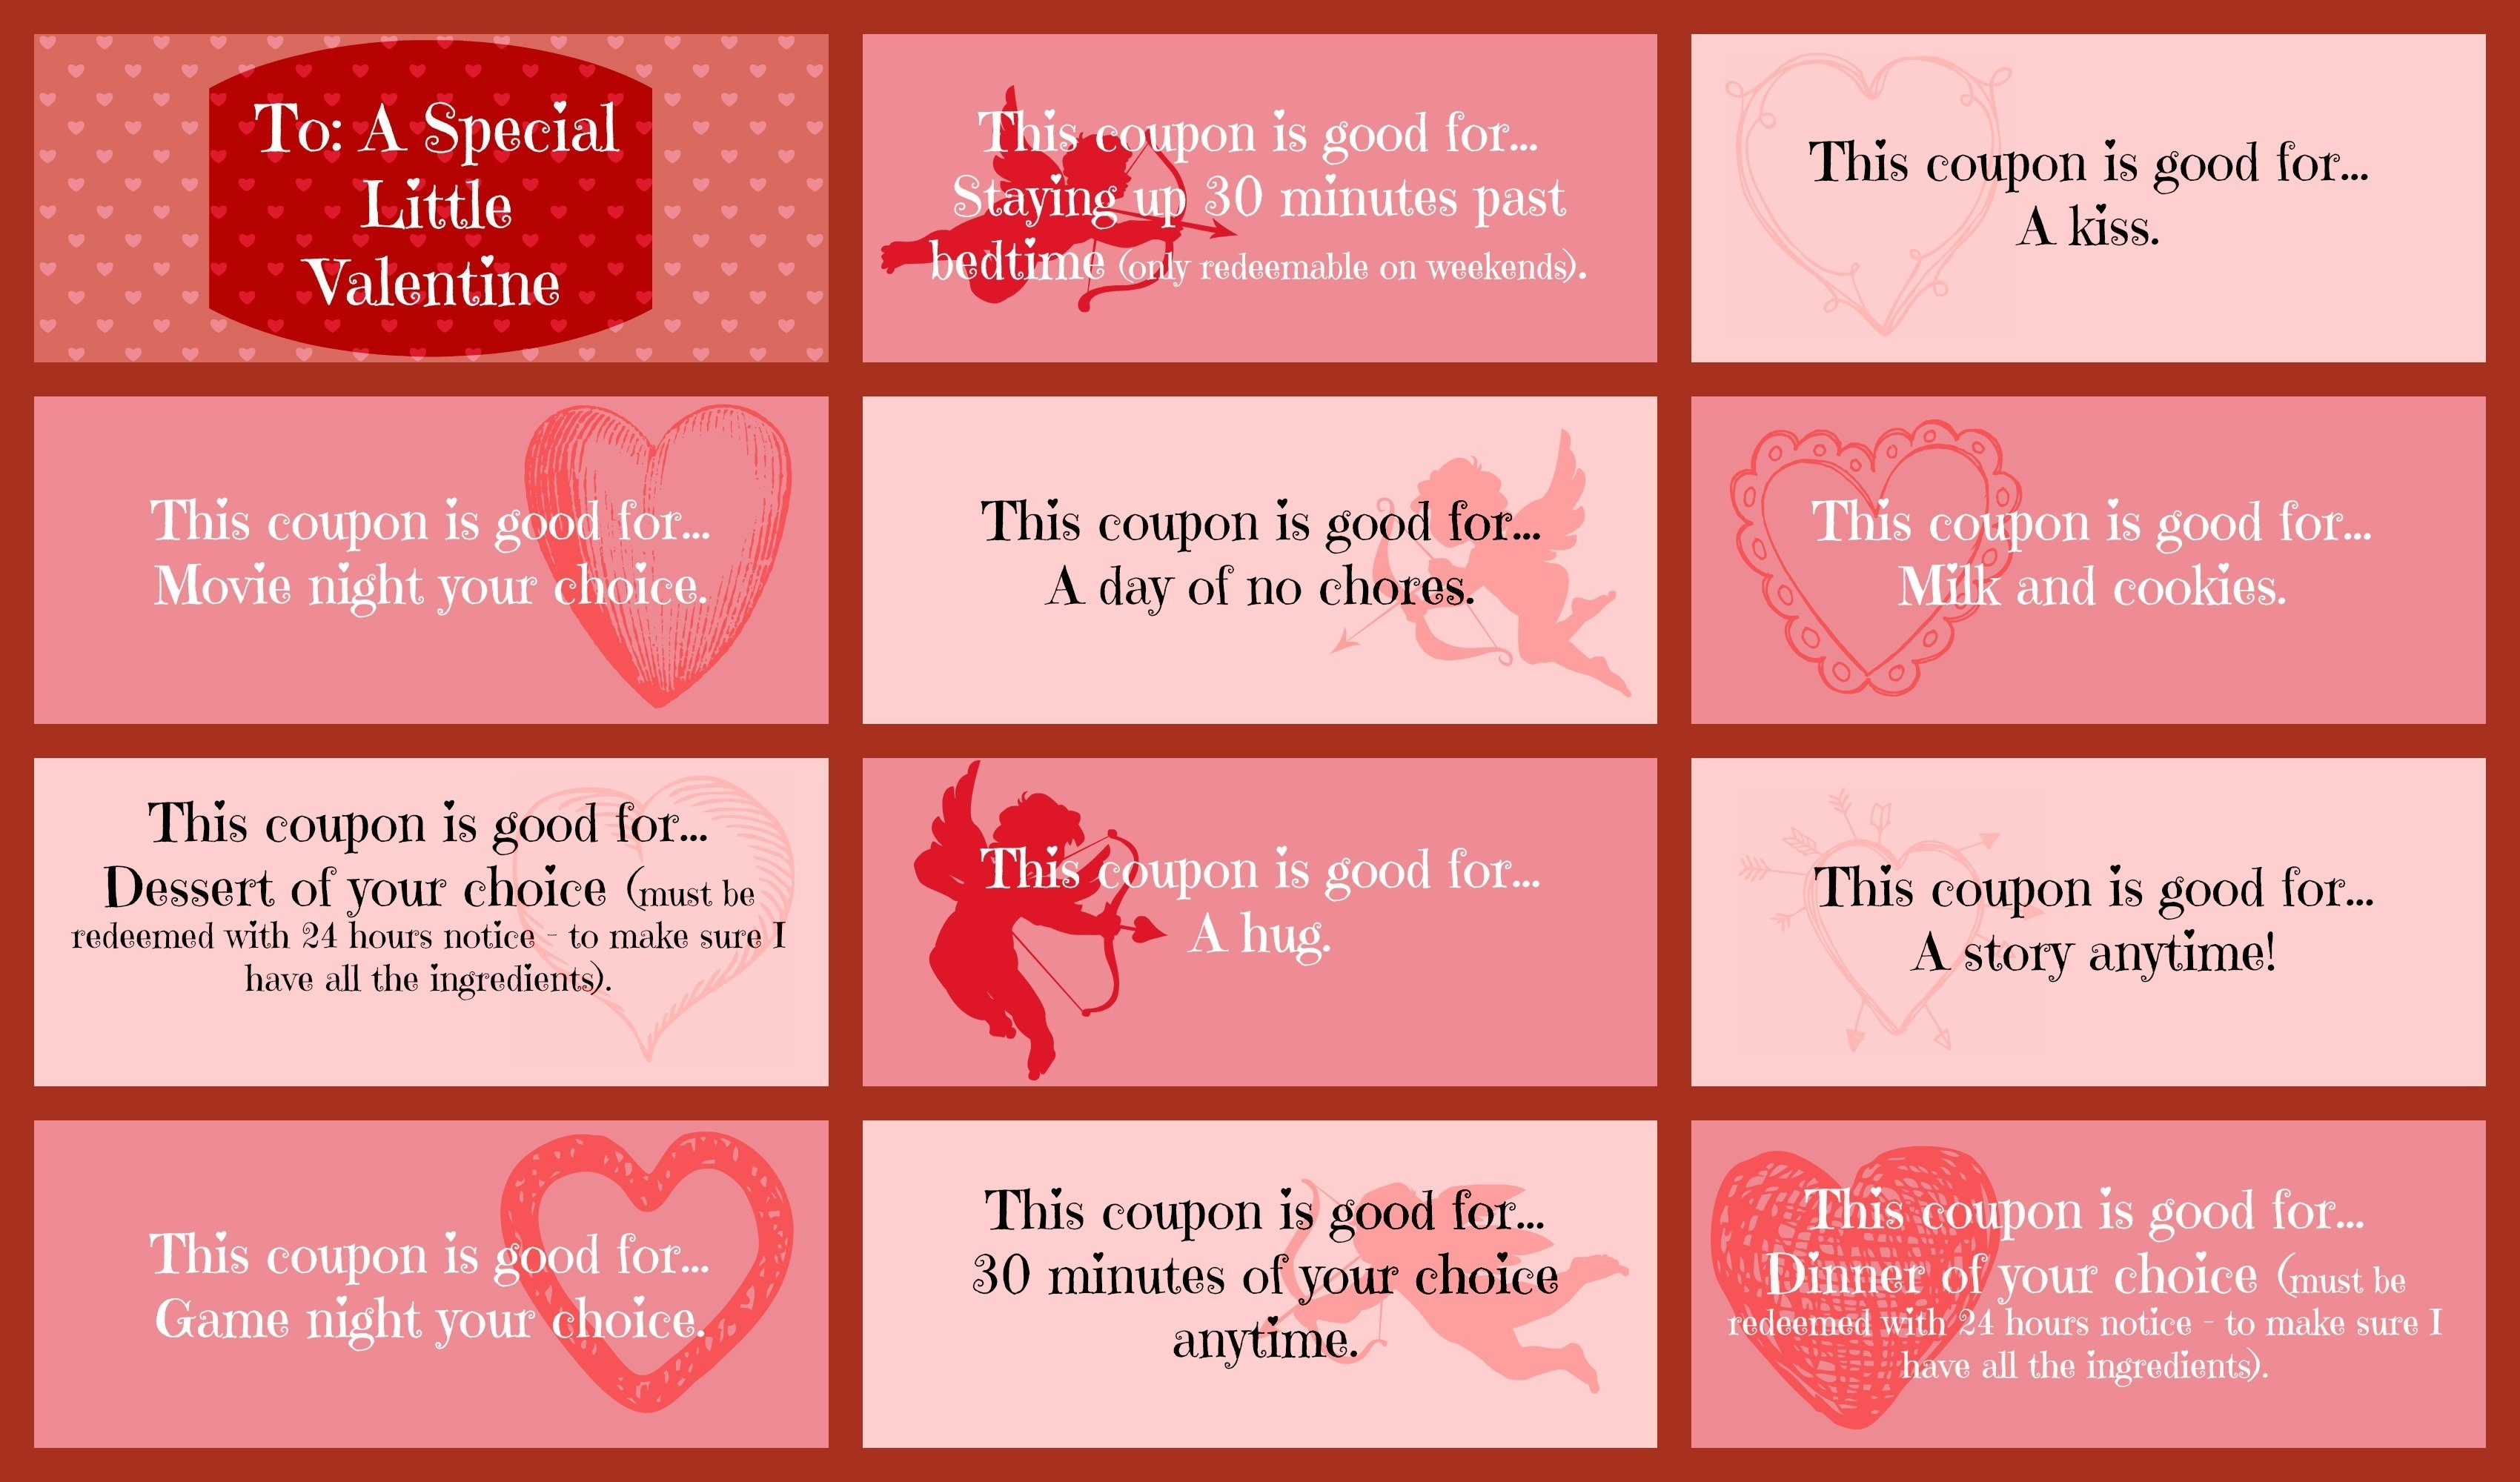 10 Stylish Cute Coupon Ideas For Boyfriend valentine day coupon book ideas startupcorner co 4 2020